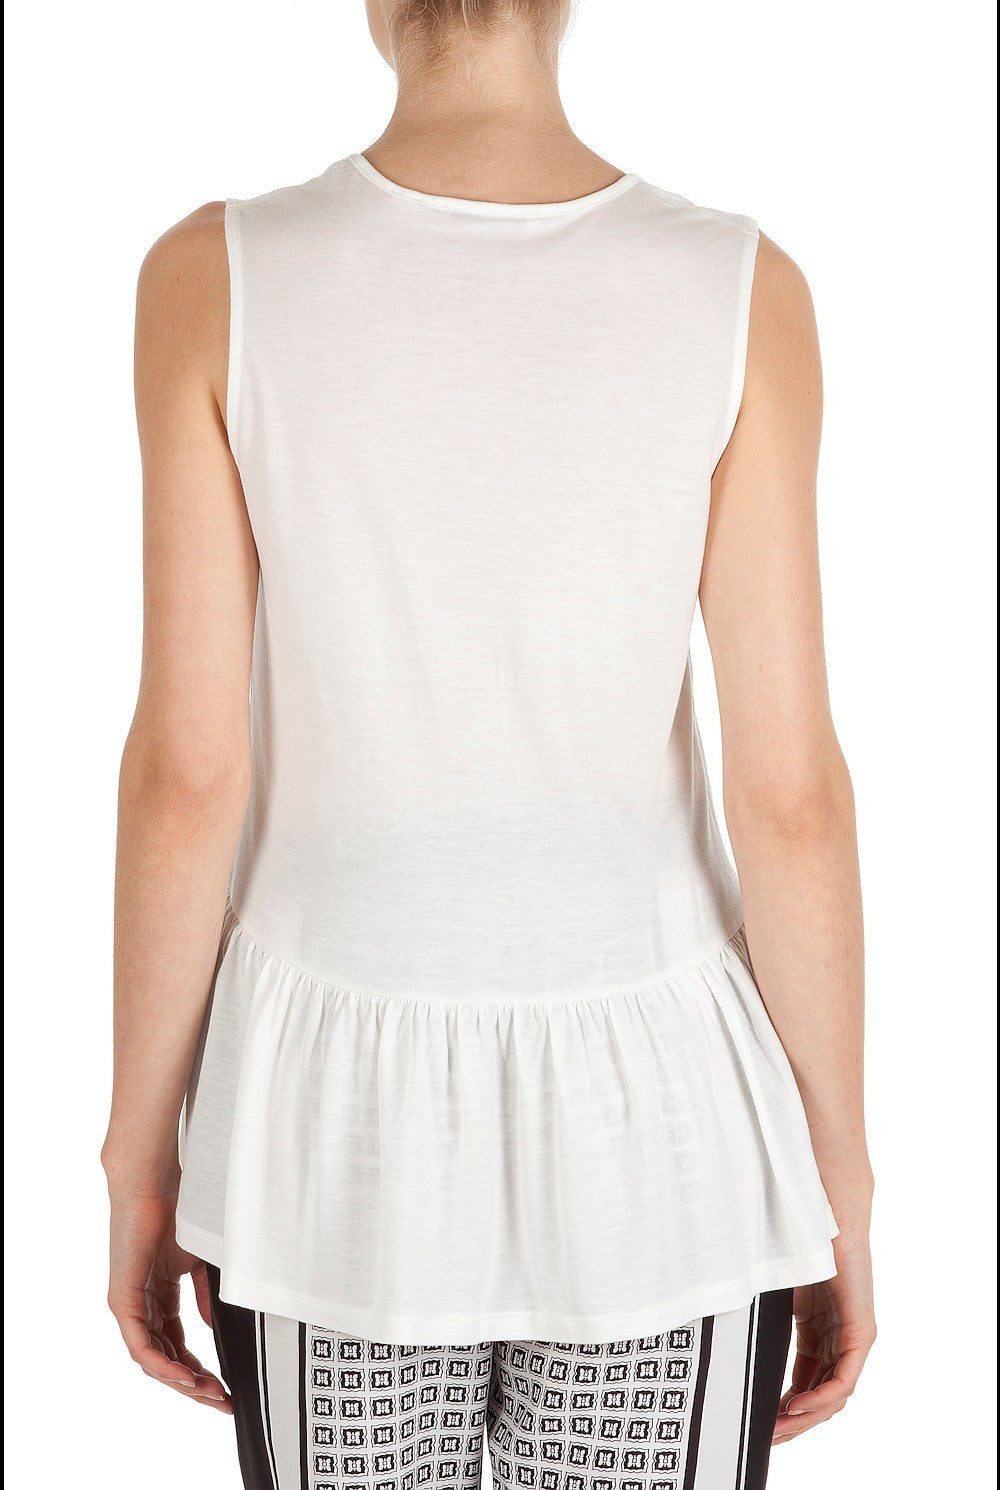 9e4f467a05d5d ... 1 · COUNTRY ROAD - Peplum jersey top! 8-10 - recycle style - 2 ...